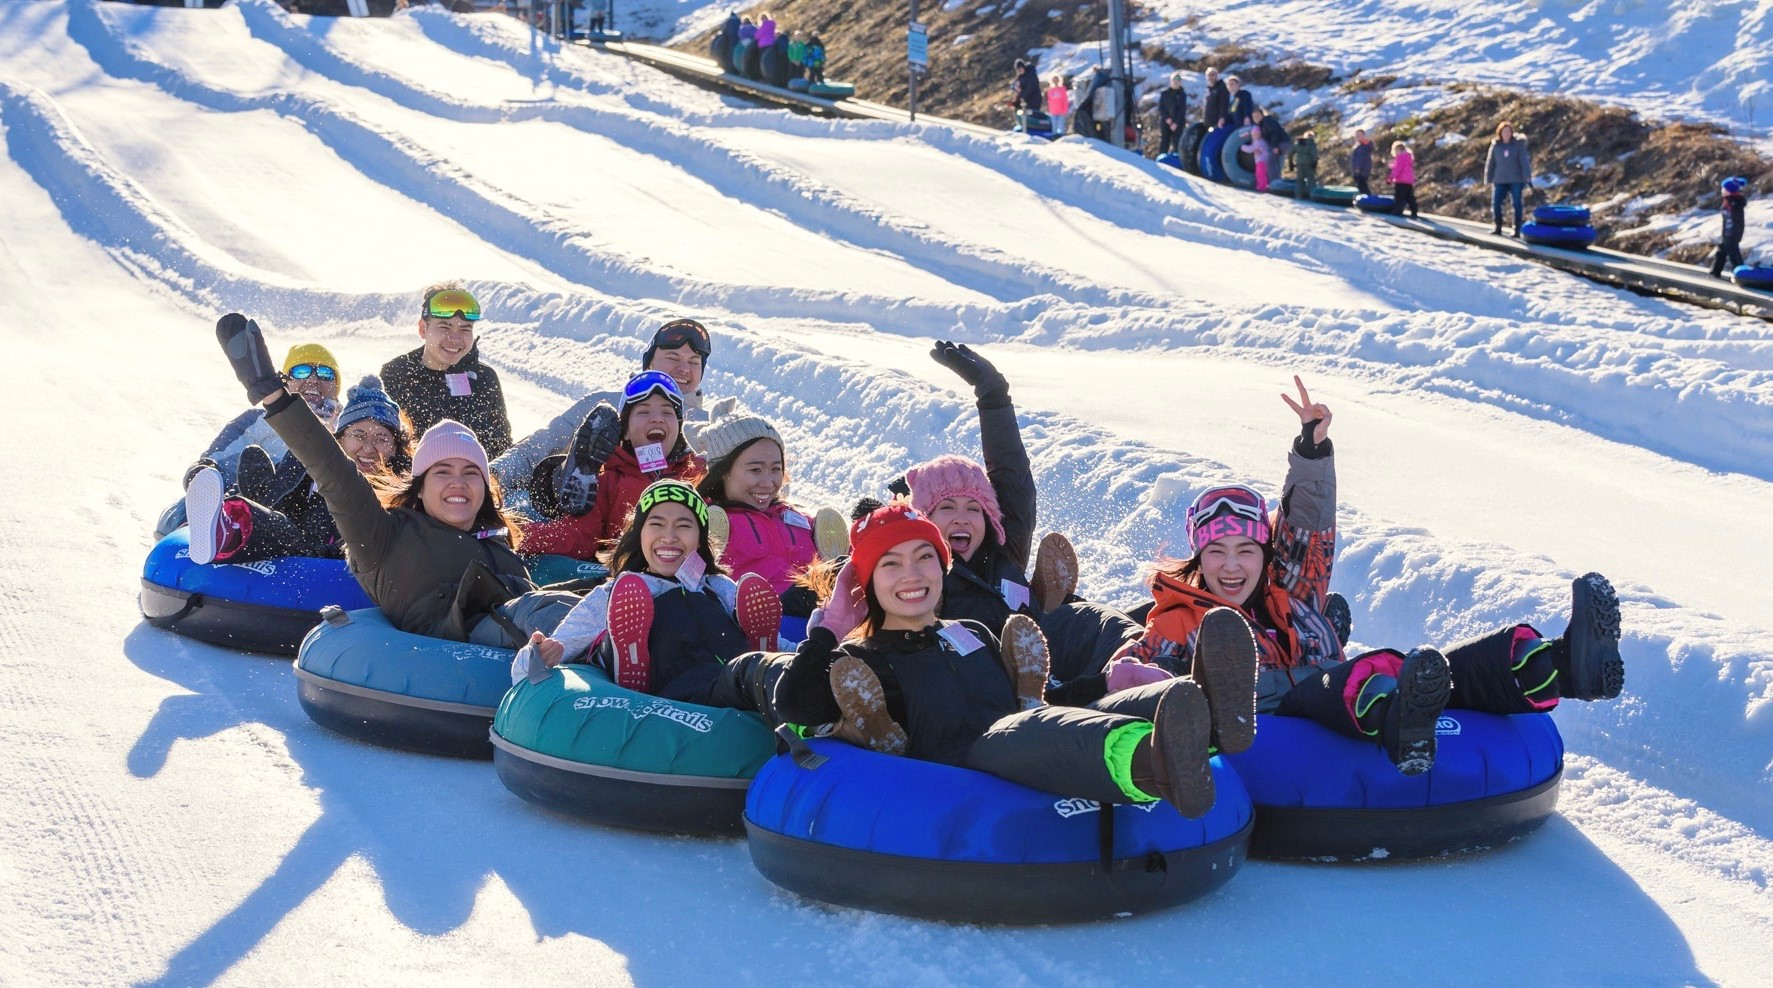 Group of people in snow tubes going down a snowy hill